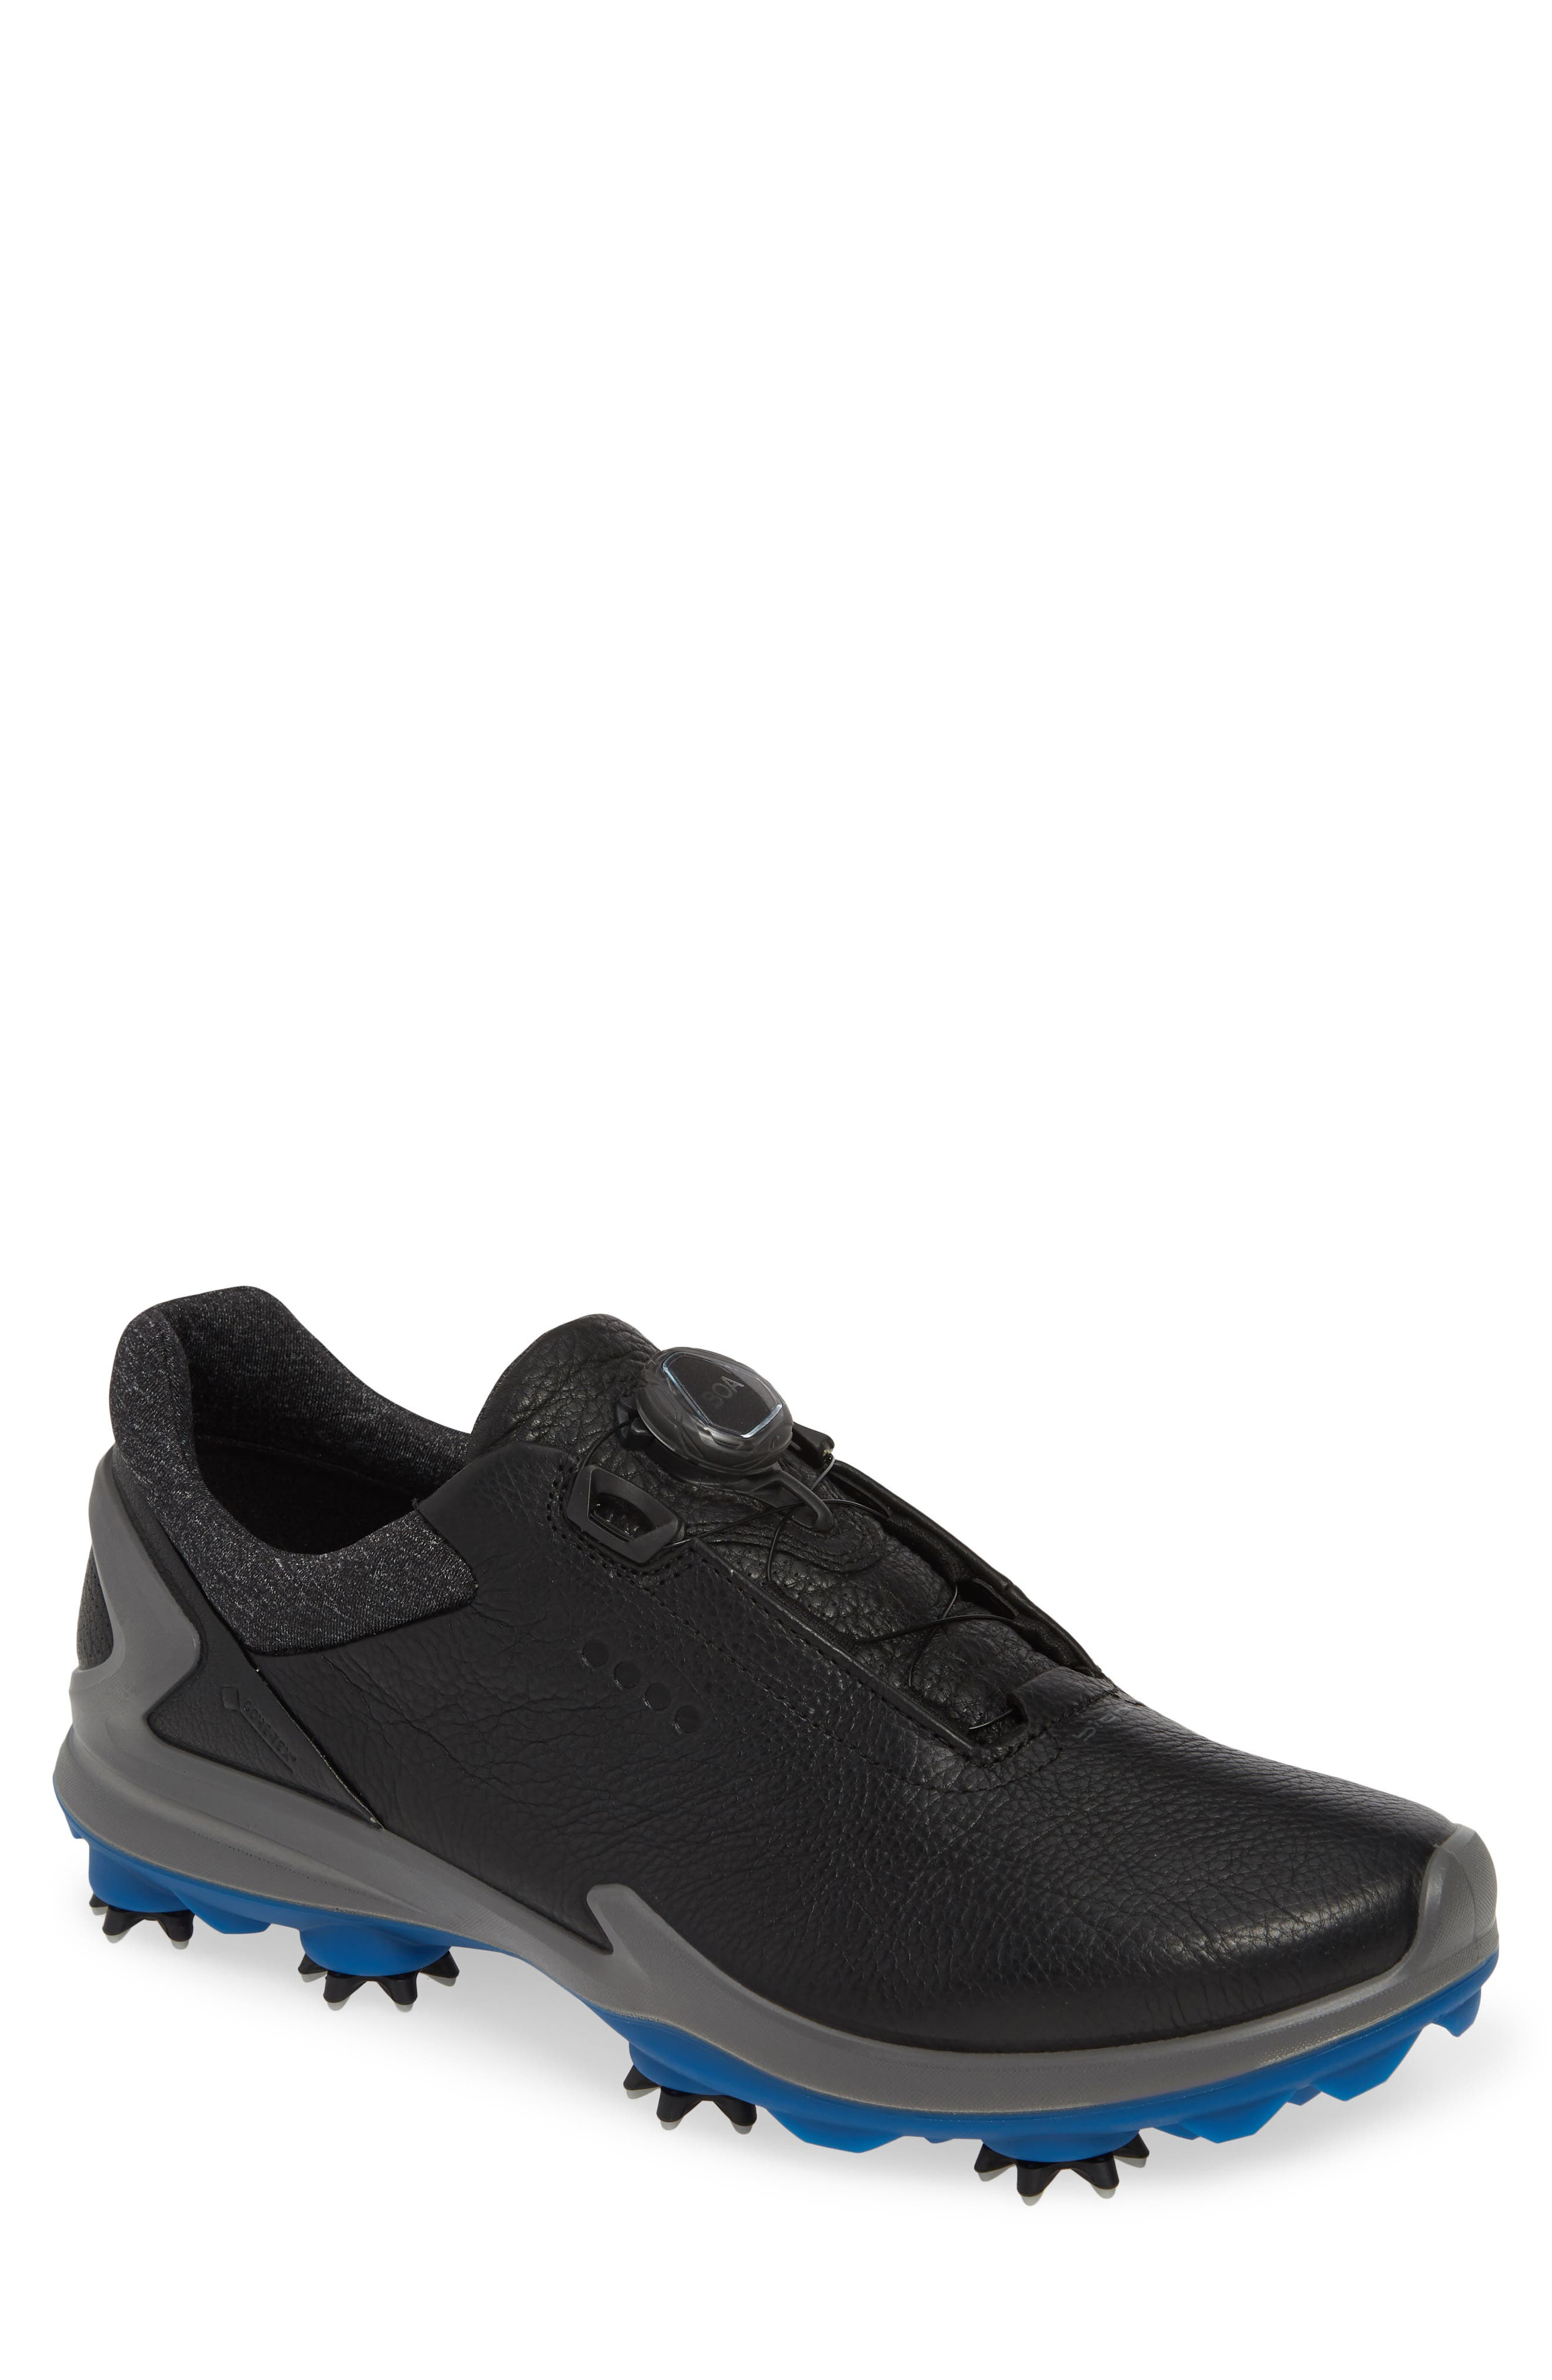 ECCO BIOM<sup>®</sup> G 3 BOA<sup>®</sup> Gore-Tex<sup>®</sup> Golf Shoe, Main, color, BLACK LEATHER